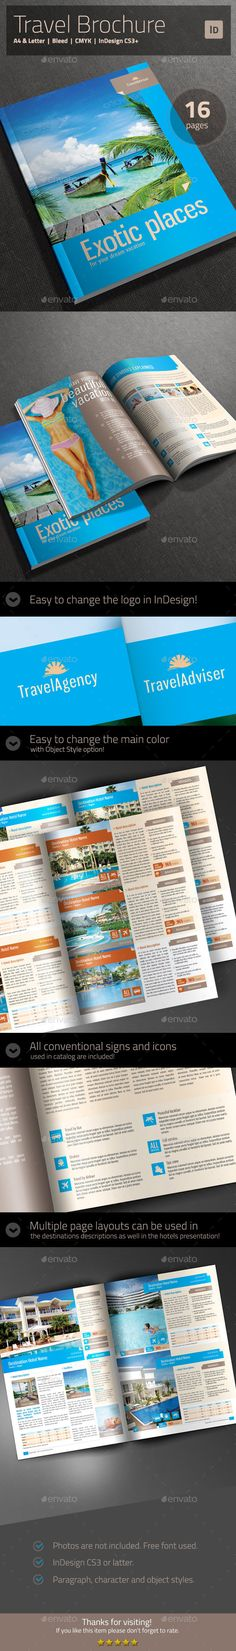 Travel Agency Brochure   Catalog Template Brochures, Catalog and - travel brochure